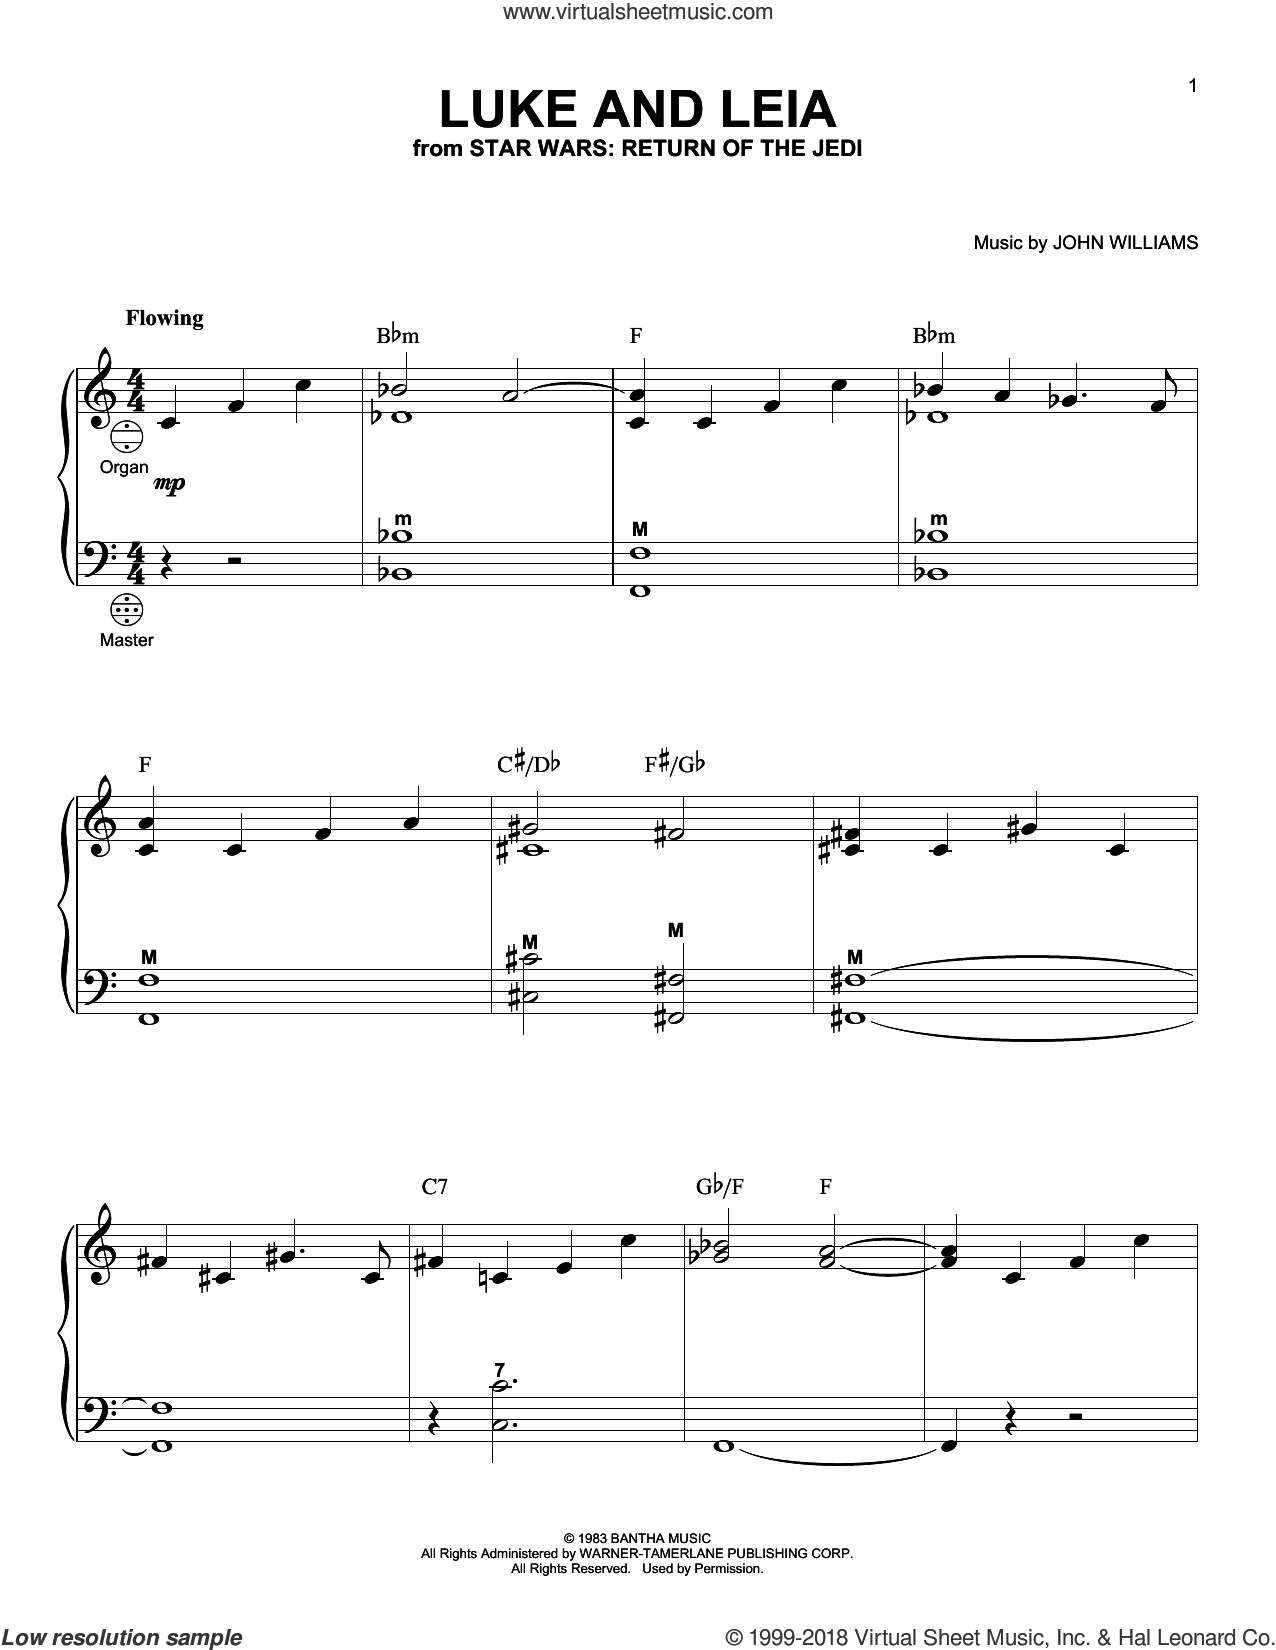 Luke And Leia sheet music for accordion by John Williams, intermediate skill level